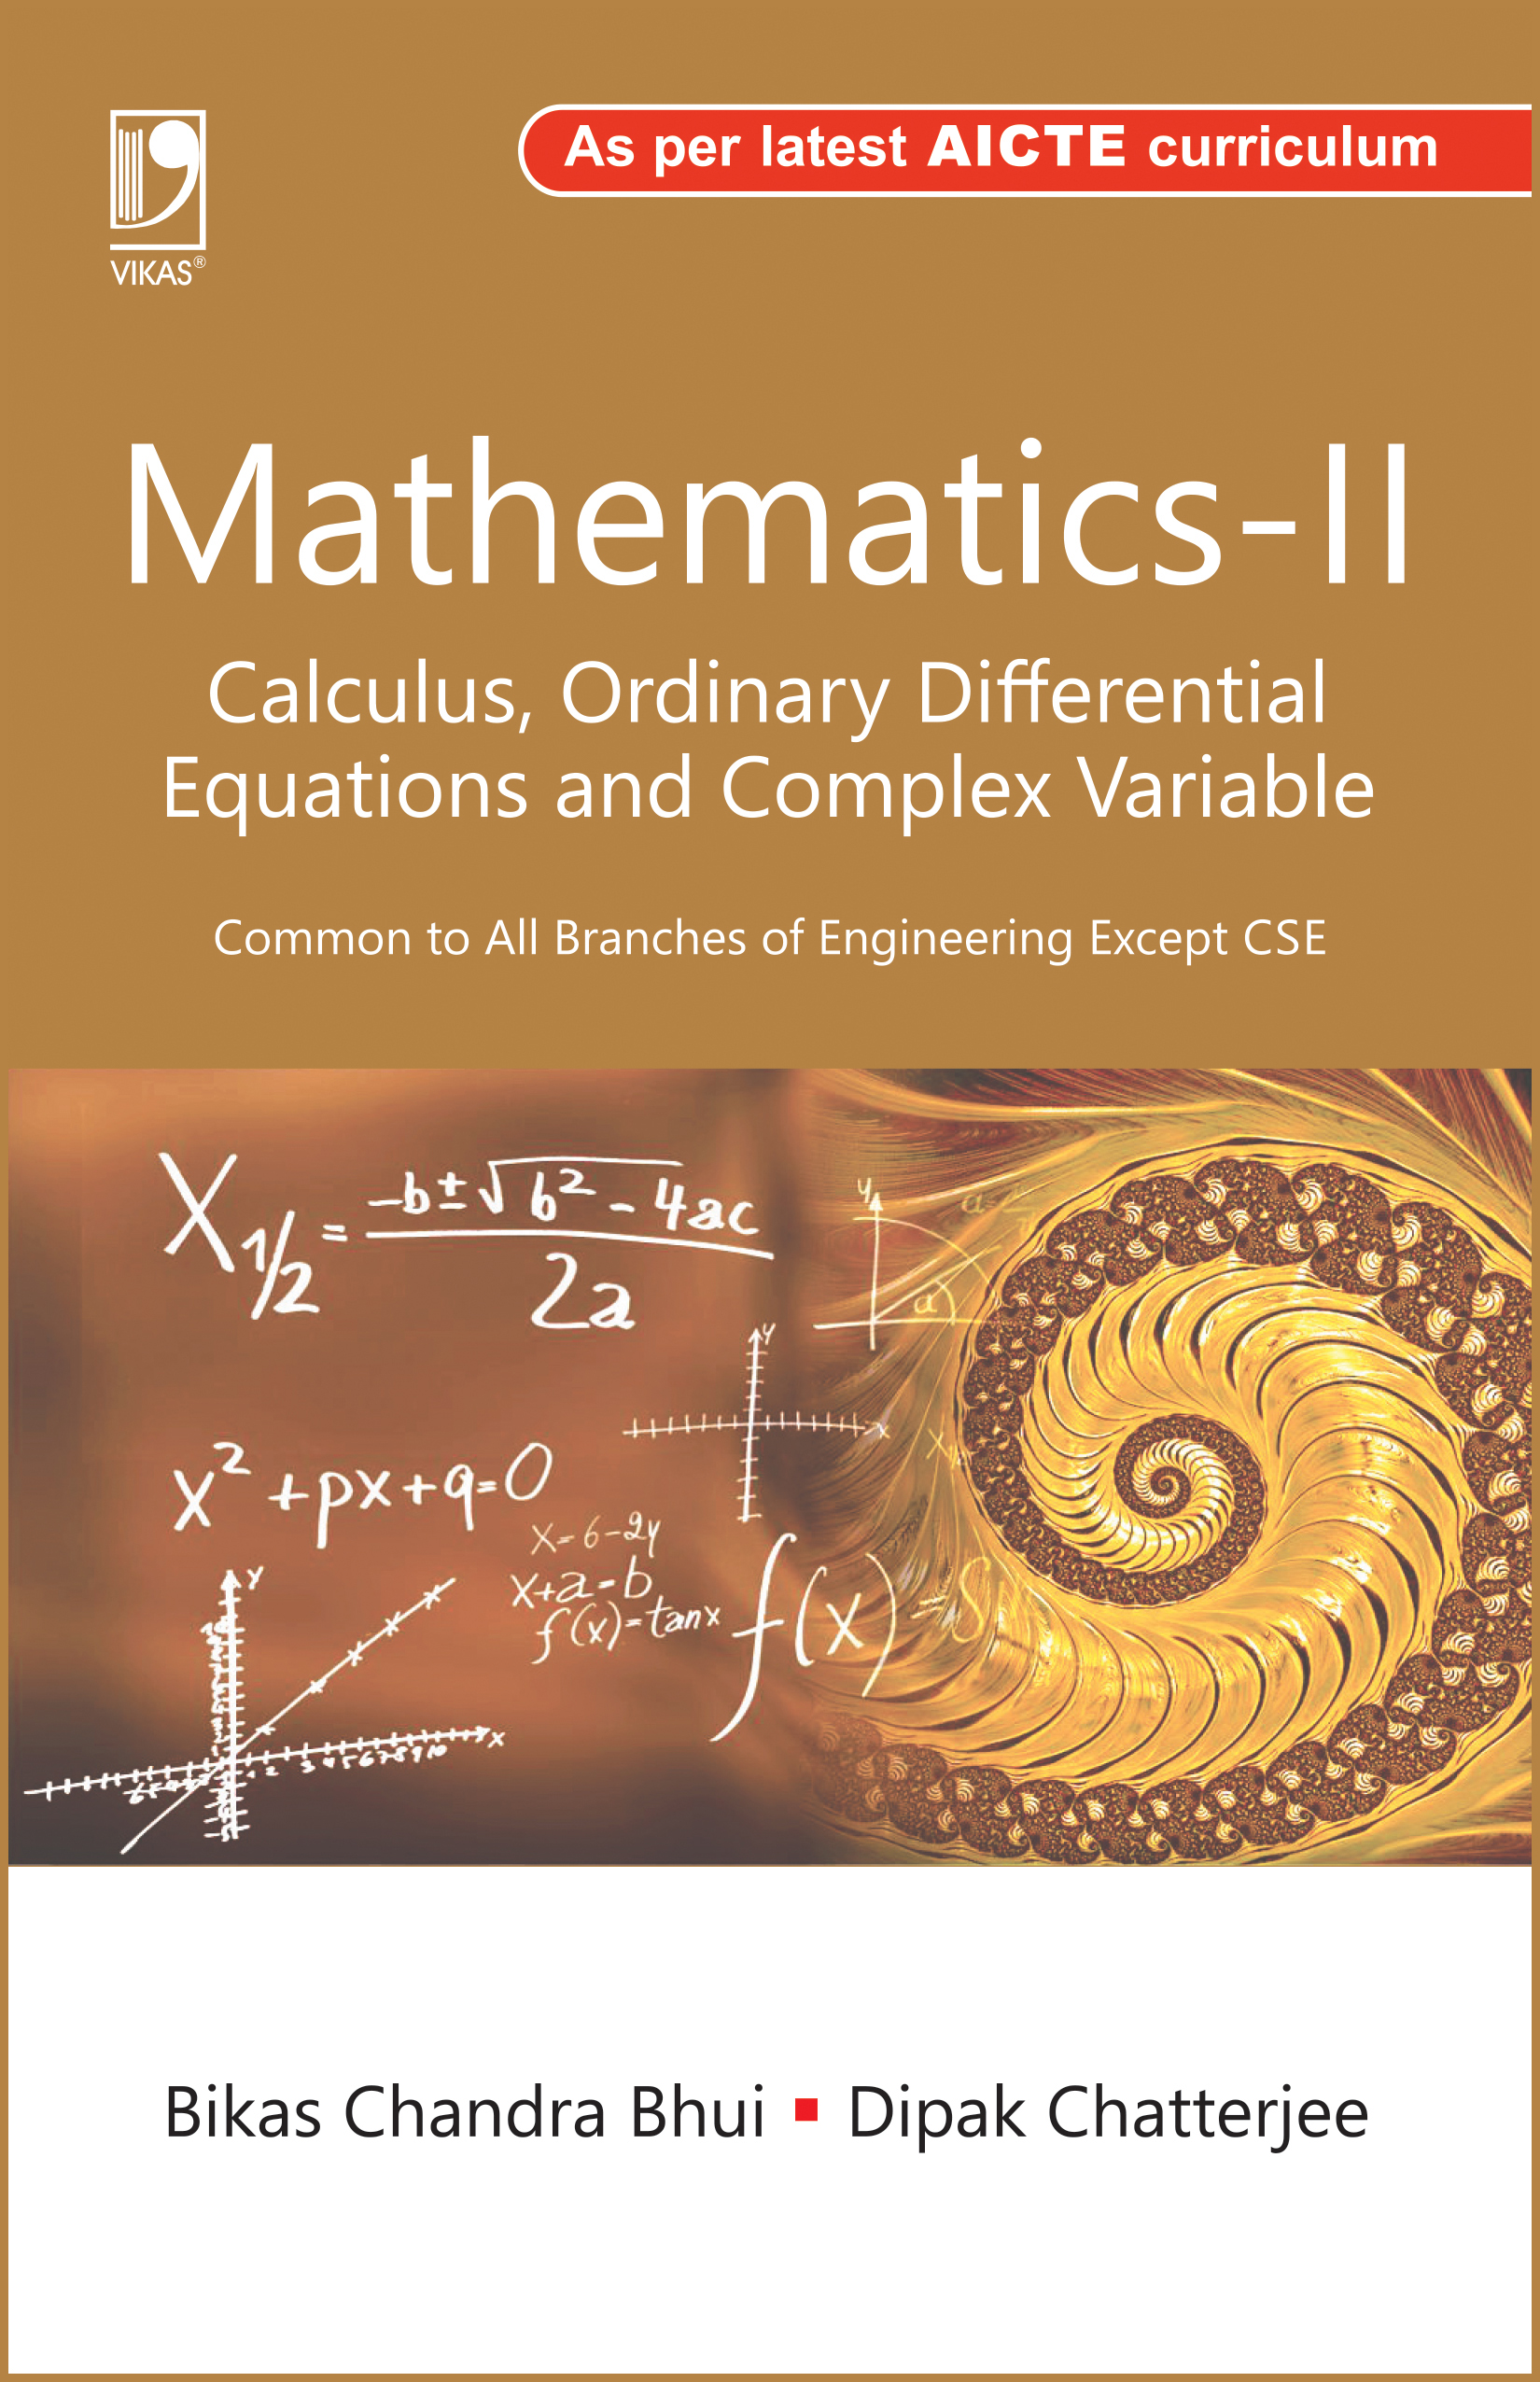 Mathematics-II (Calculus, Ordinary Differential Equations and Complex Variable) (As per AICTE)